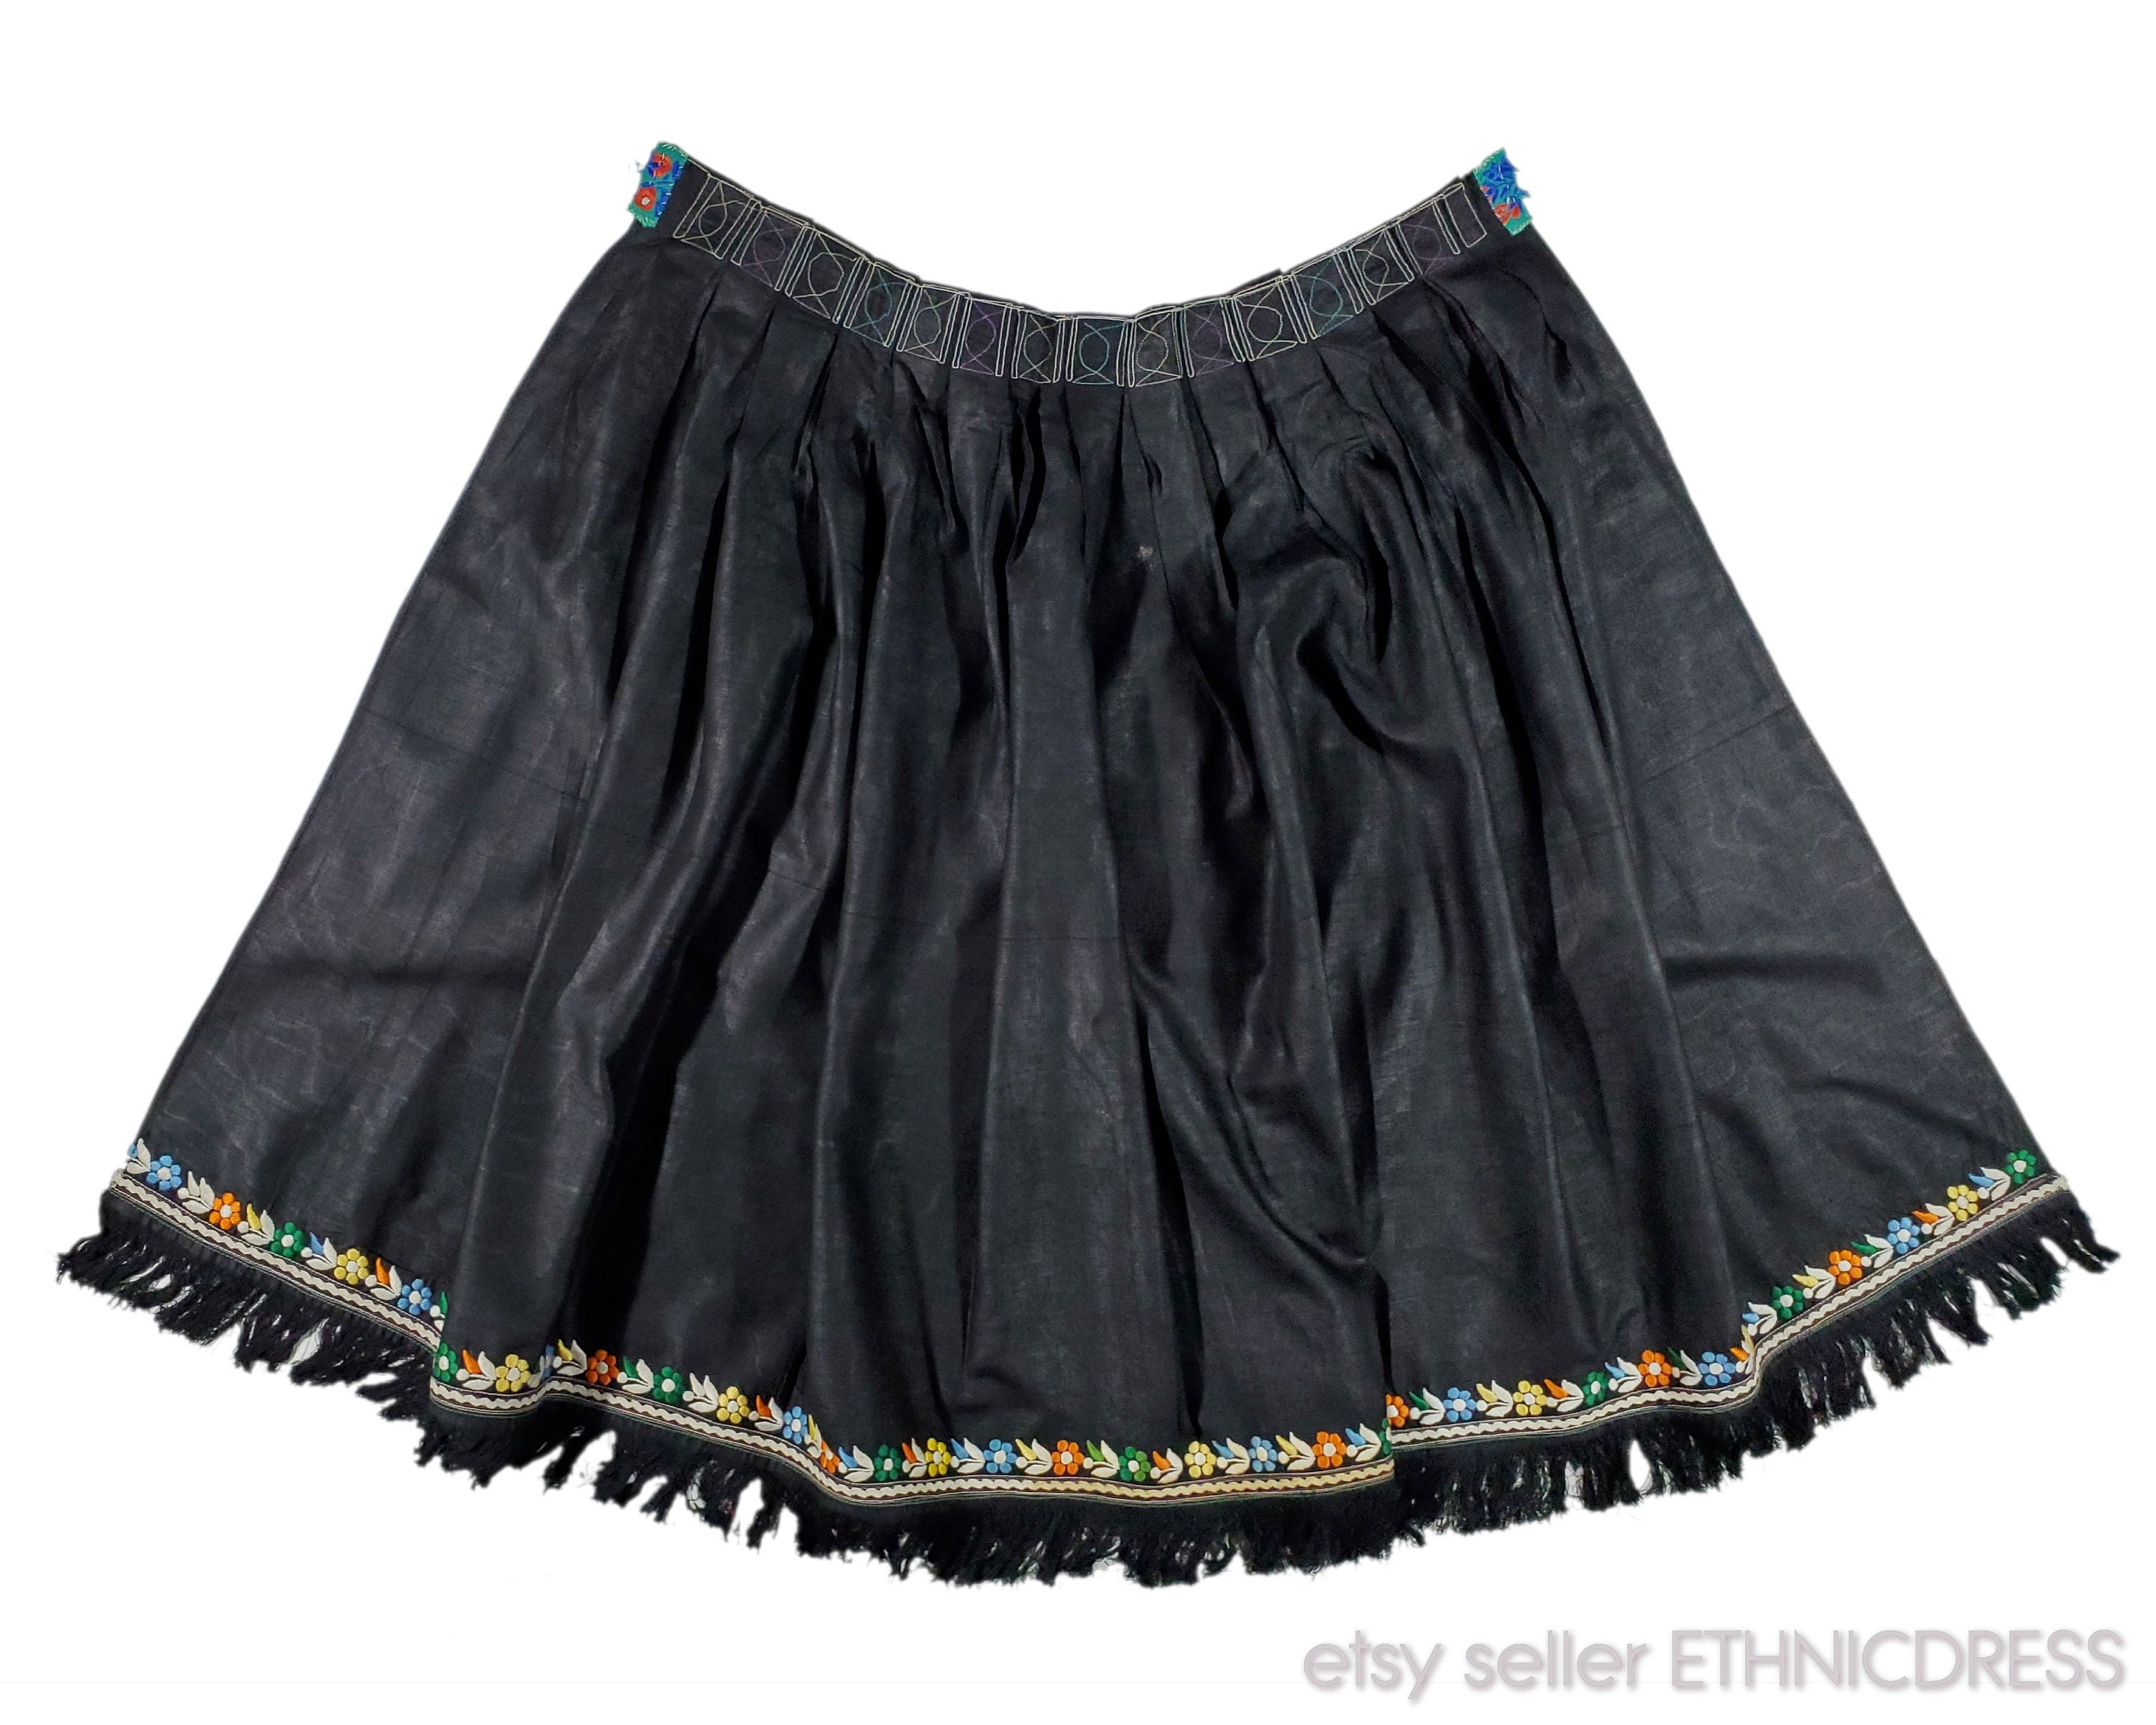 Vintage Aprons, Retro Aprons, Old Fashioned Aprons & Patterns Authentic Slovak Folk Costume From Western Slovakia  Zahorie Kroj Black Moire with Floral Embroidery Vintage Folklore Clothing Dress Ethnic $50.00 AT vintagedancer.com